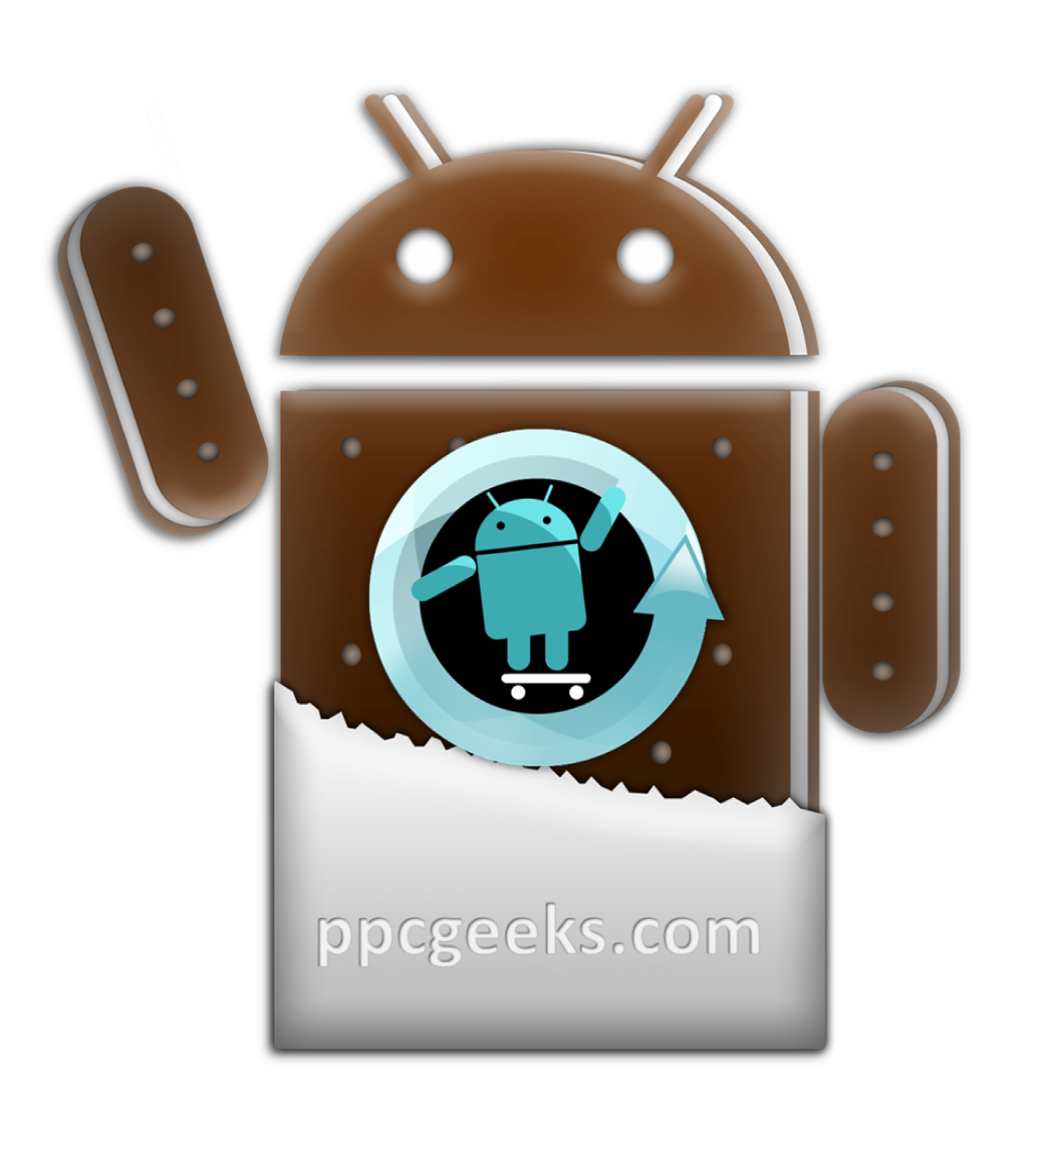 CyanogenMod 9 = Ice Cream Sandwich